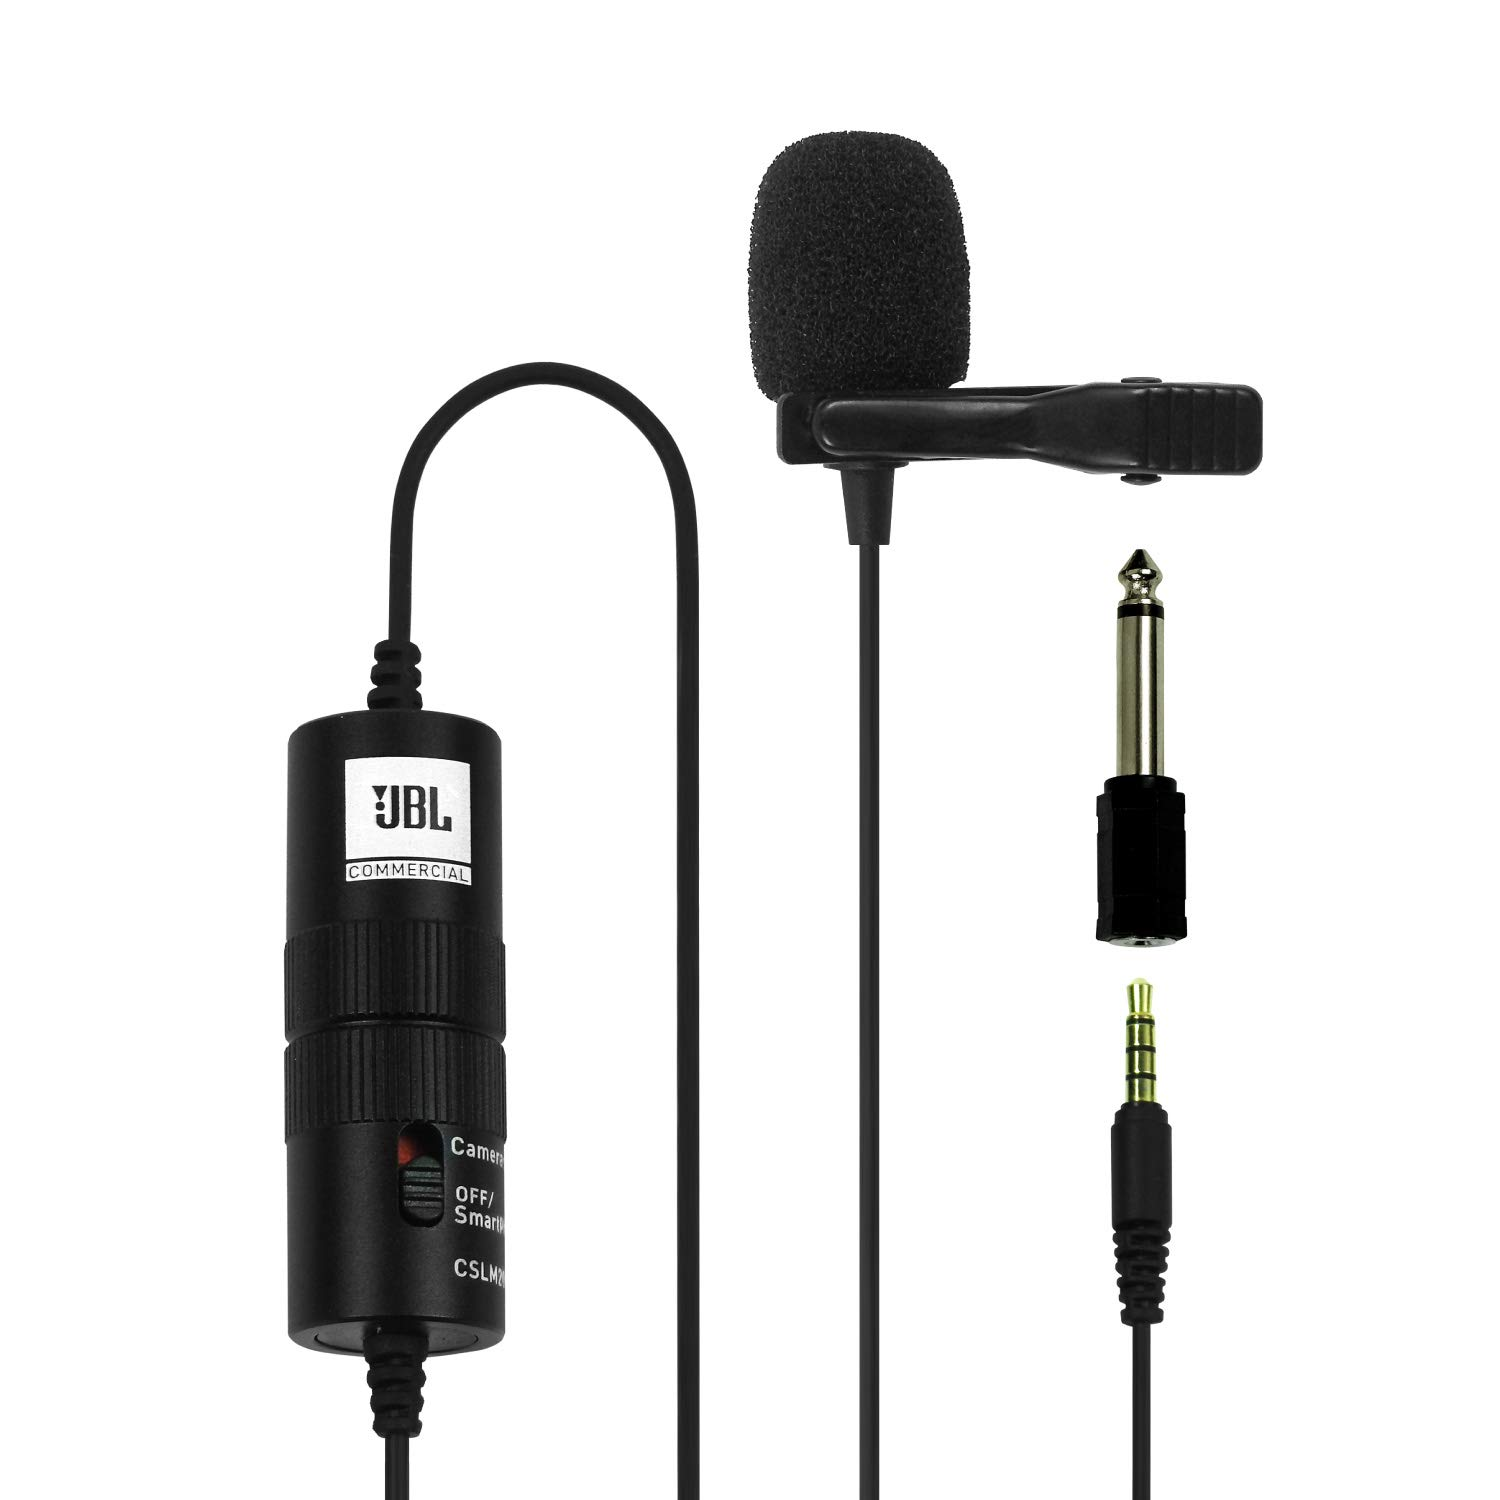 JBL Commercial CSLM20B small Omnidirectional Lavalier Microphone $13.63 Coupon